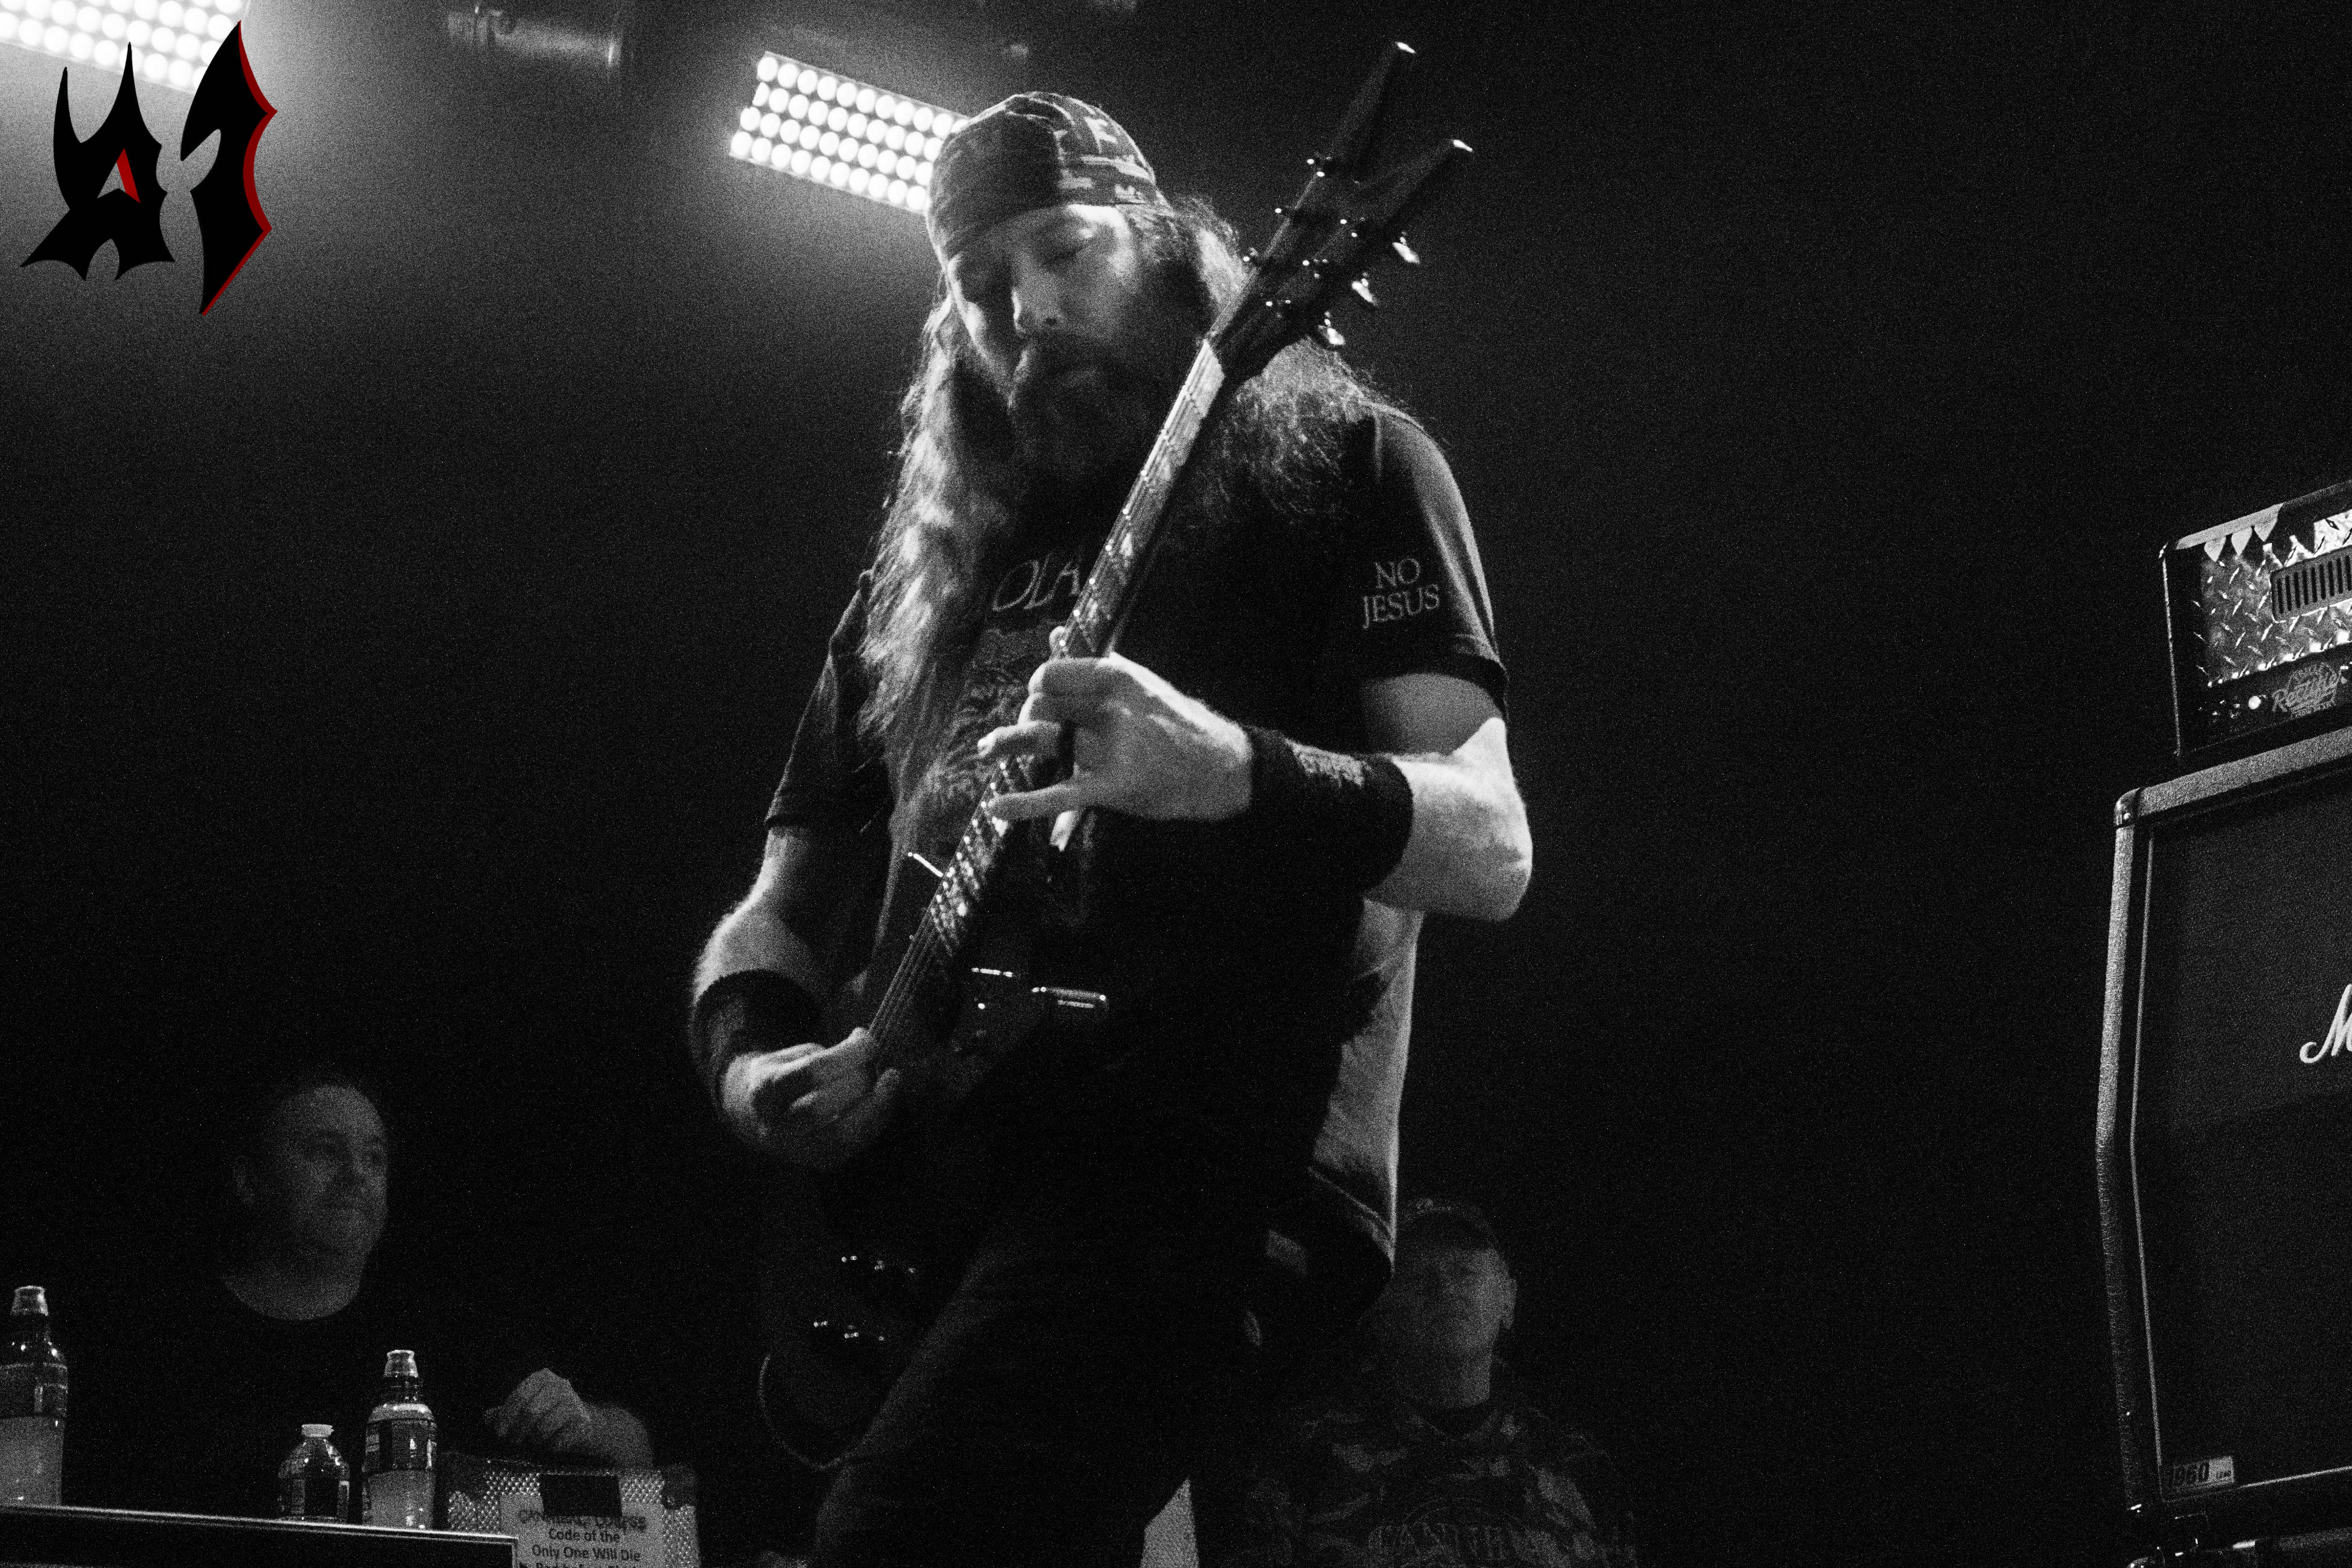 Motocultor 2018 – Day 2 - Cannibal Corpse 18